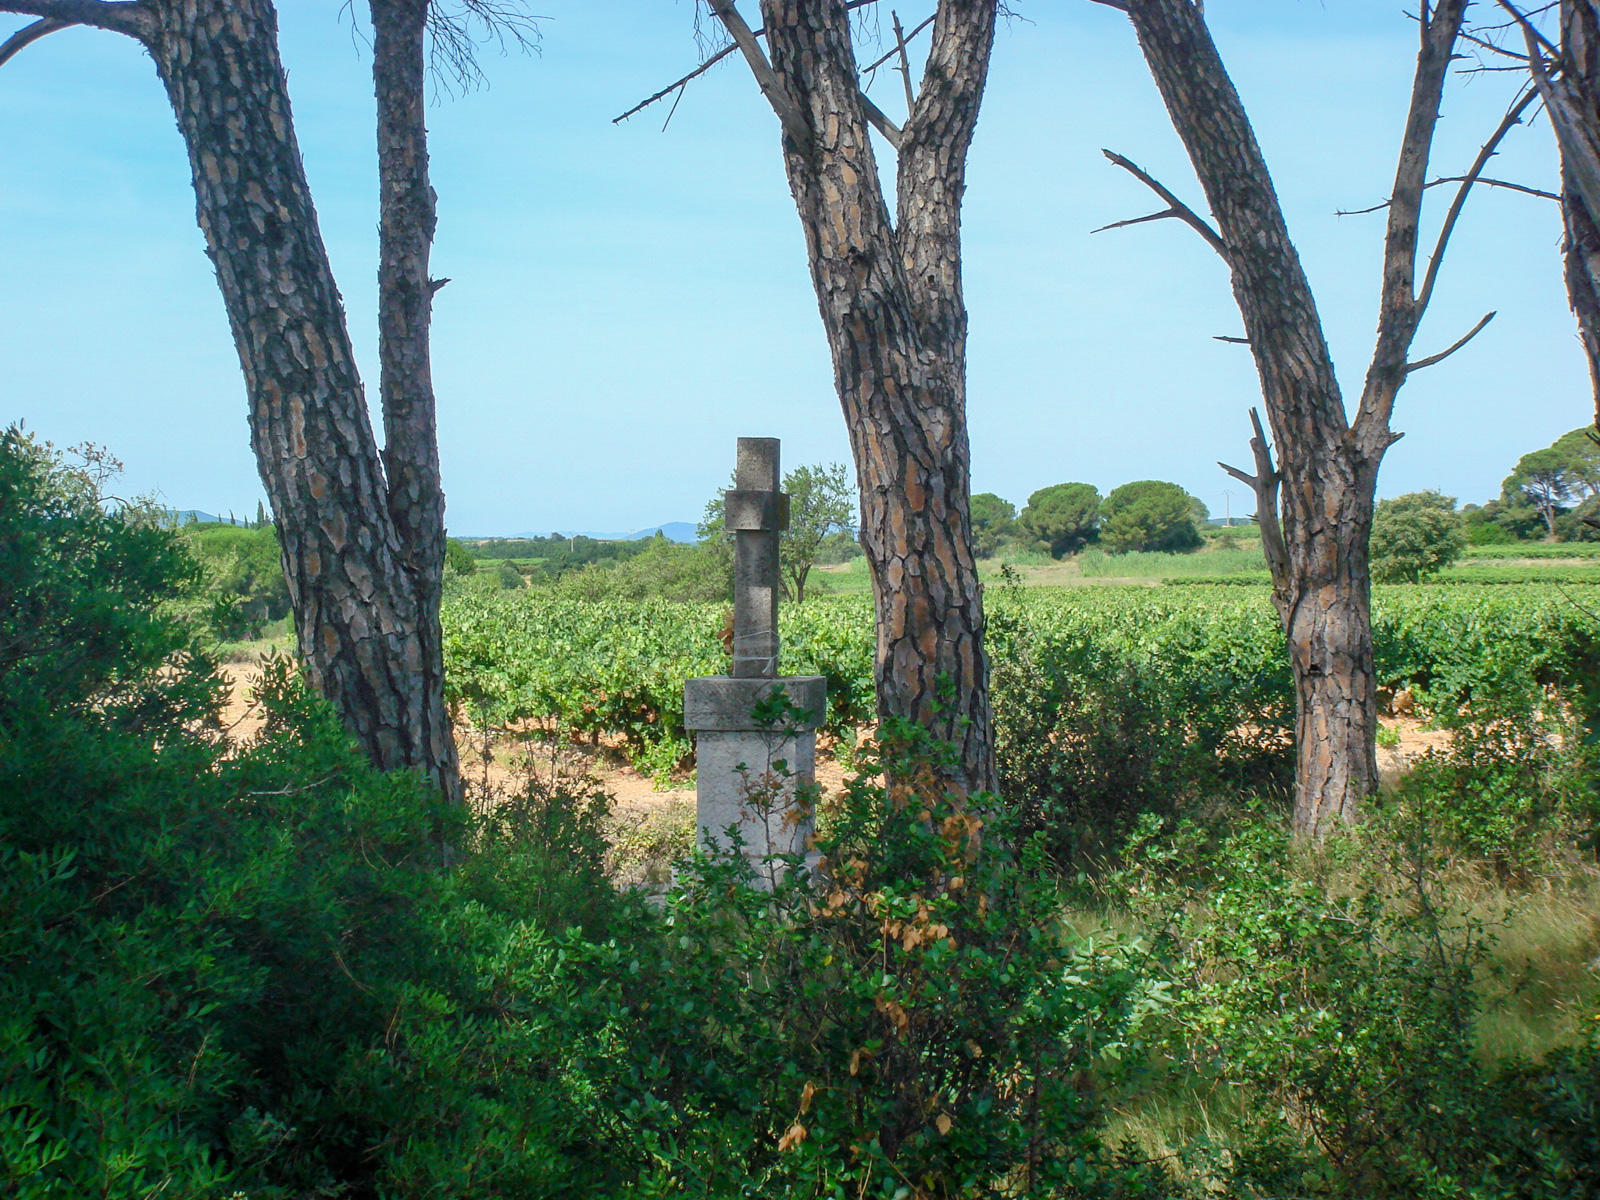 Cross in the vineyards of the domain of Pierrefont - hérault